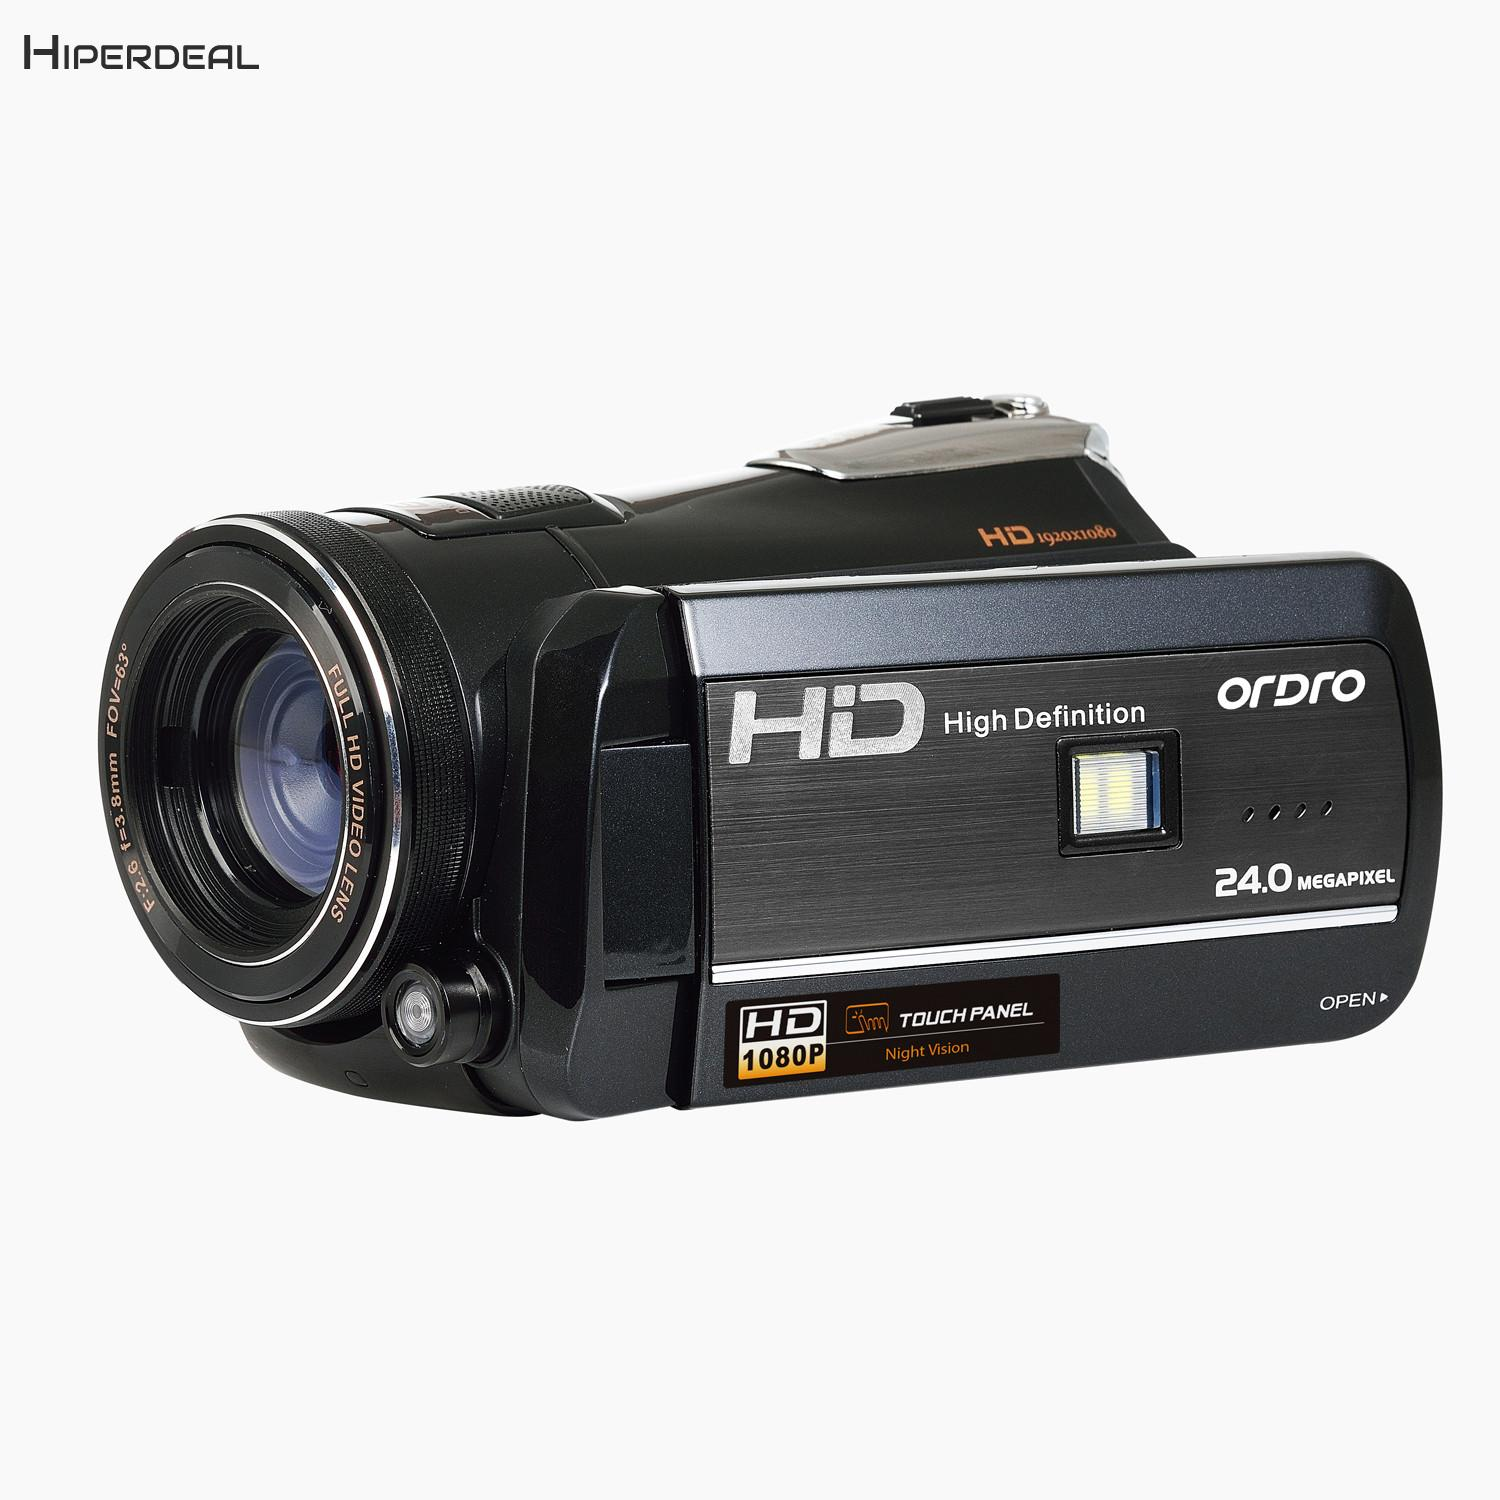 HIPERDEAL ORDRO HDV-D395 18X Digital Zoom Sony CMOS 1080P FHD Camcorder Night Vision WIFI Video Camera Smile Face capture BAY24